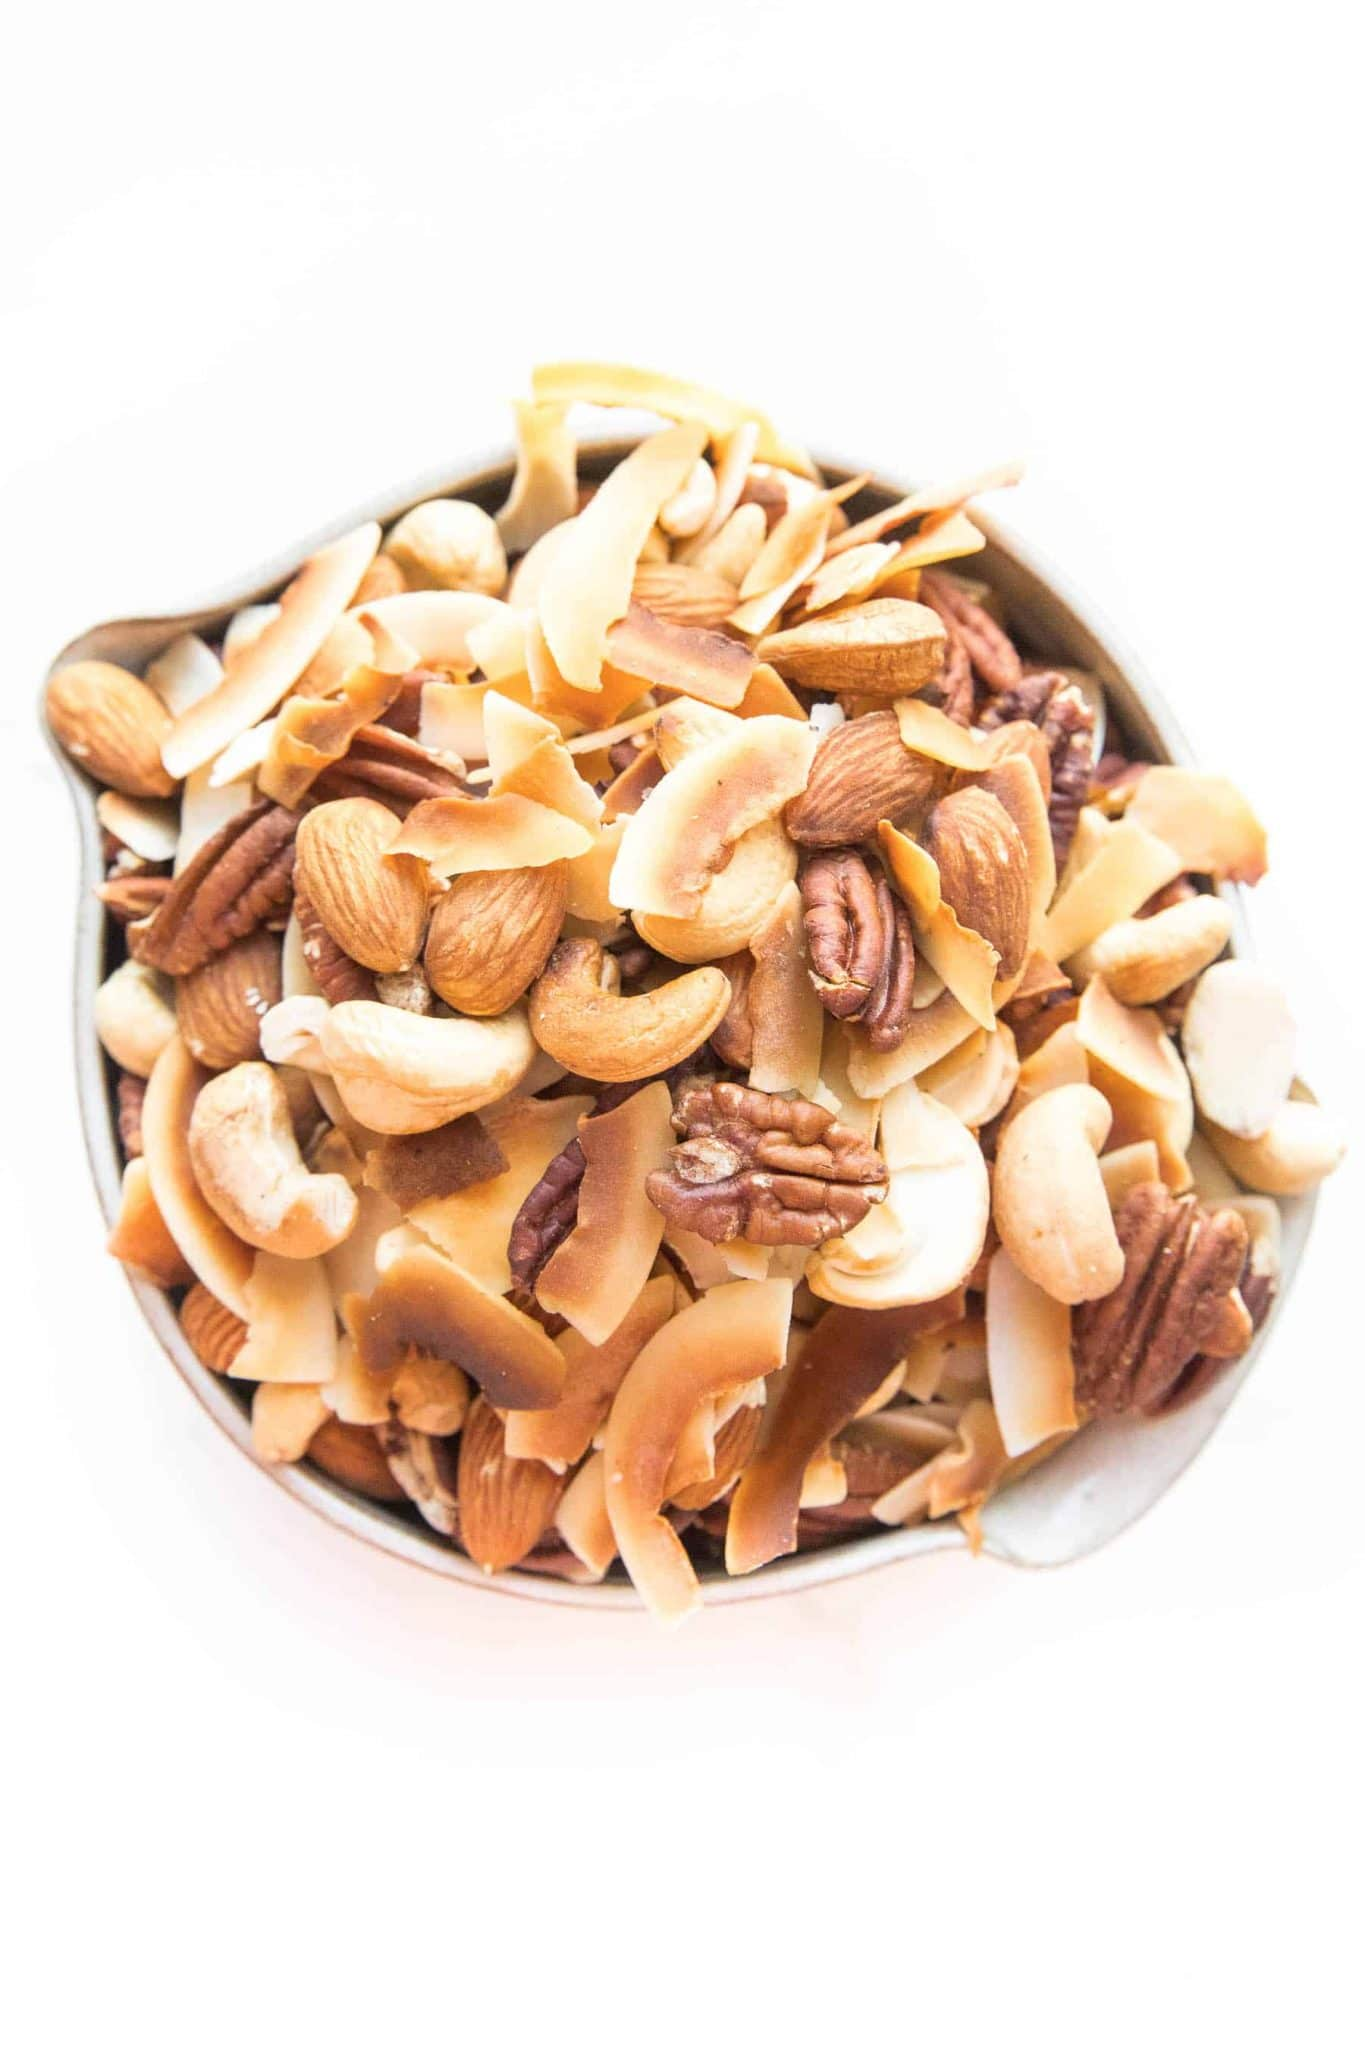 Assorted nuts and coconut chips in a bowl on a white surface